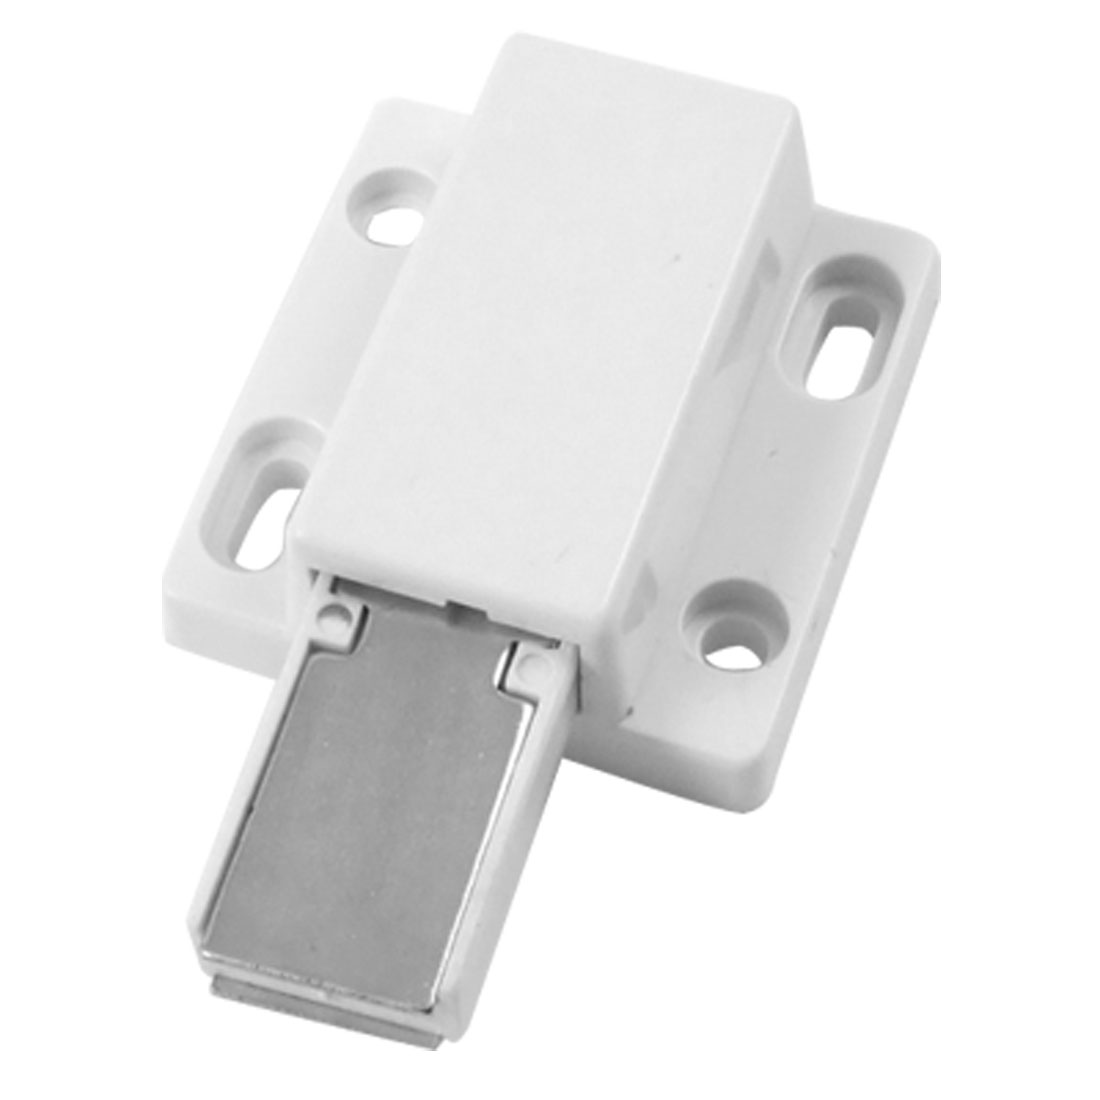 "Cabinet 1.8"" Length White Catch Latch Magnet w Plate"